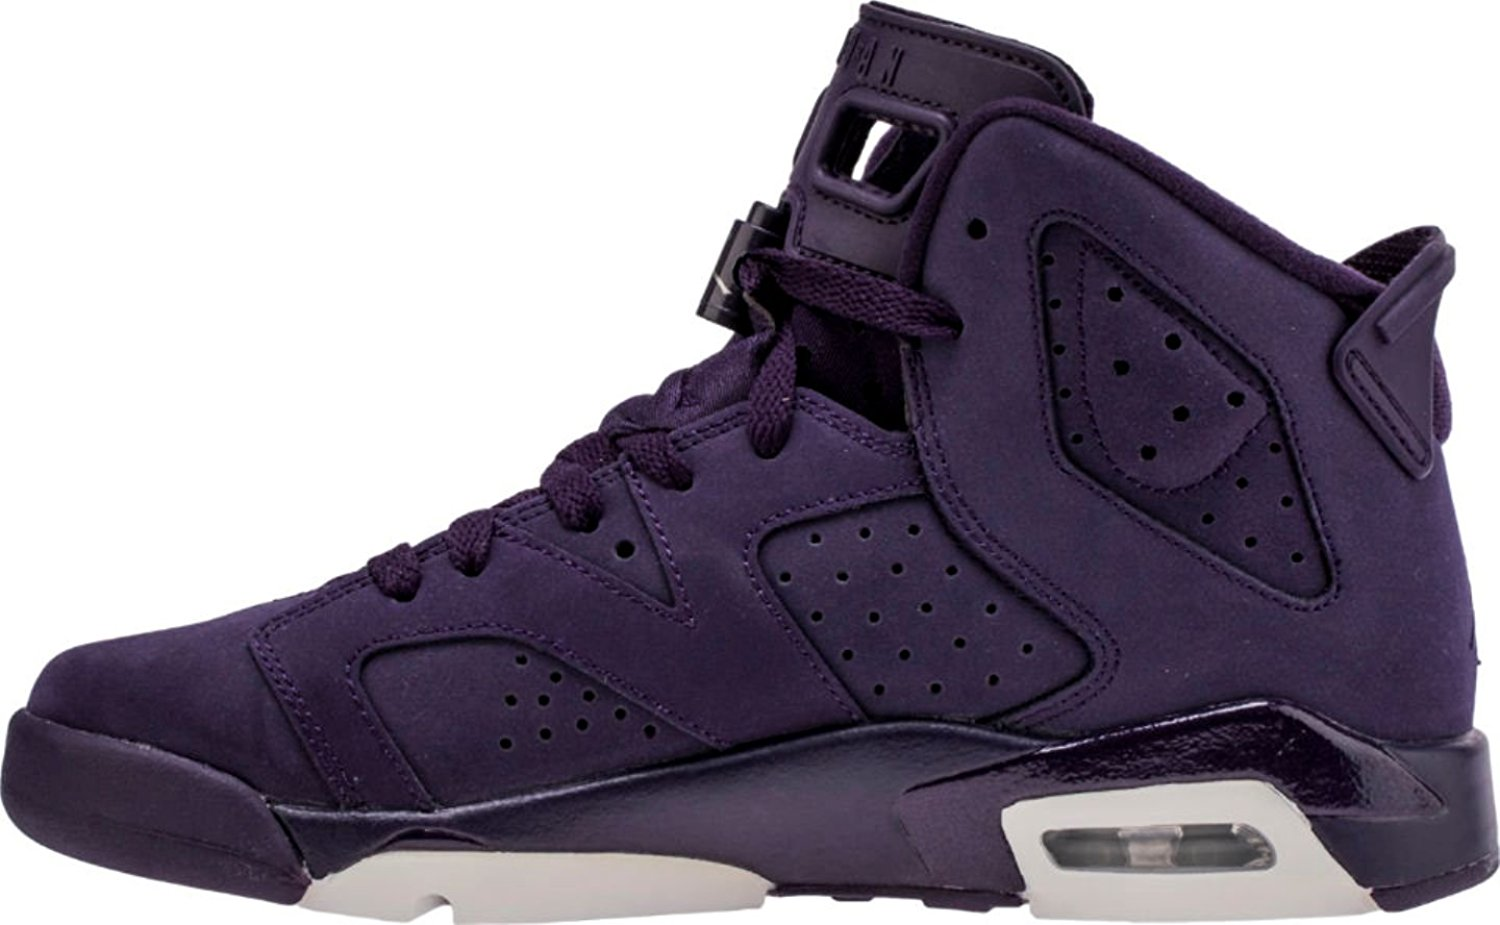 Nike Air Jordan 6 Retro G.s Youth Big Kids Purple Dynasty White 543390-509